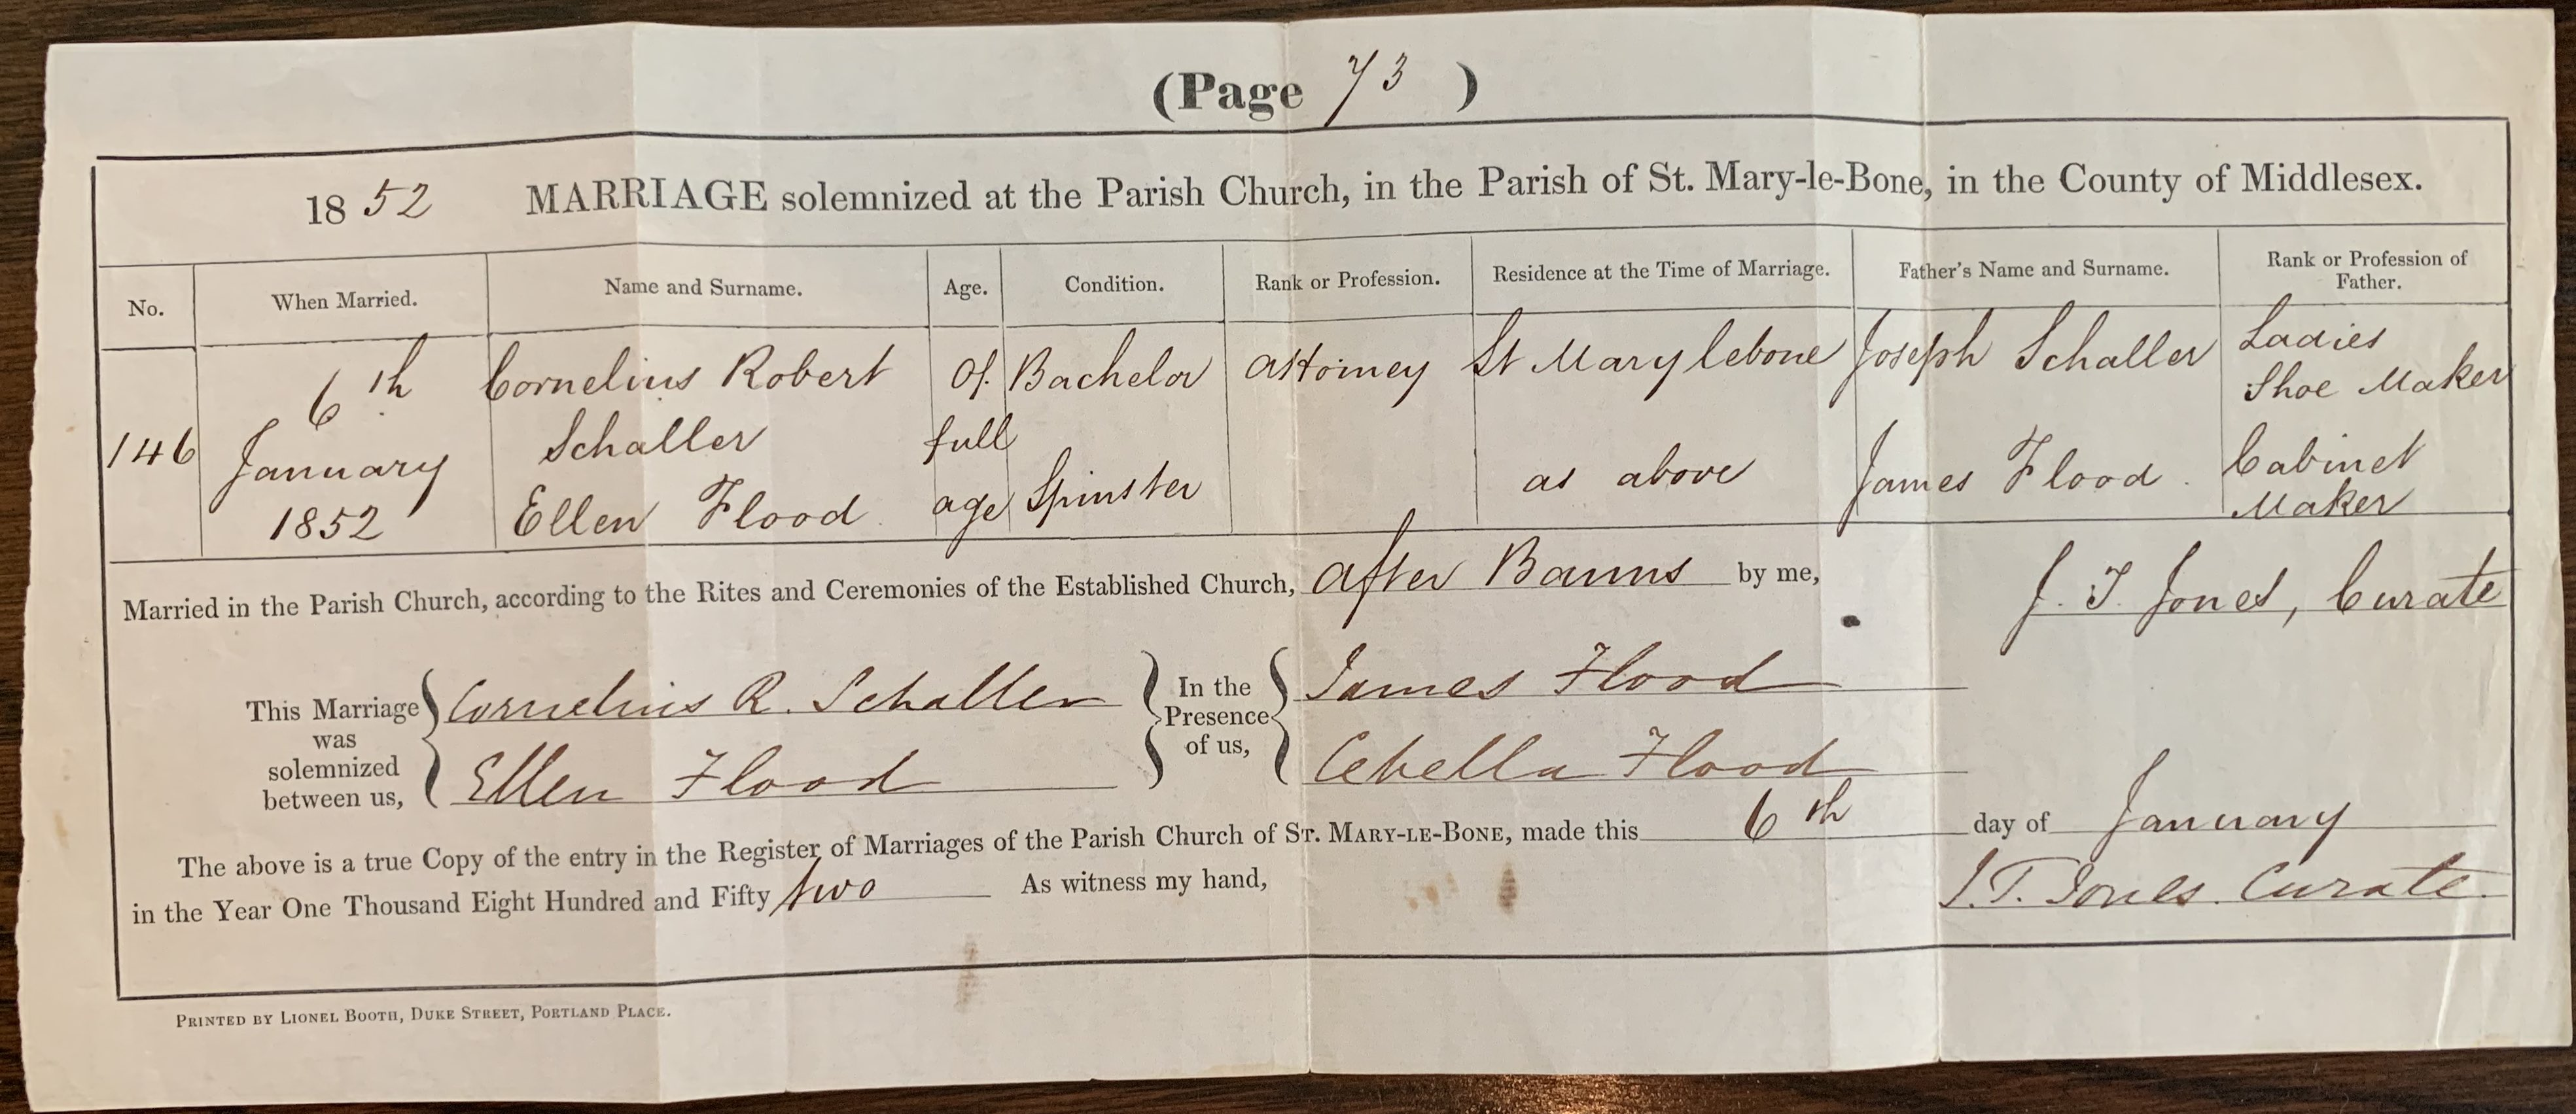 Schaller-Flood marriage certificate